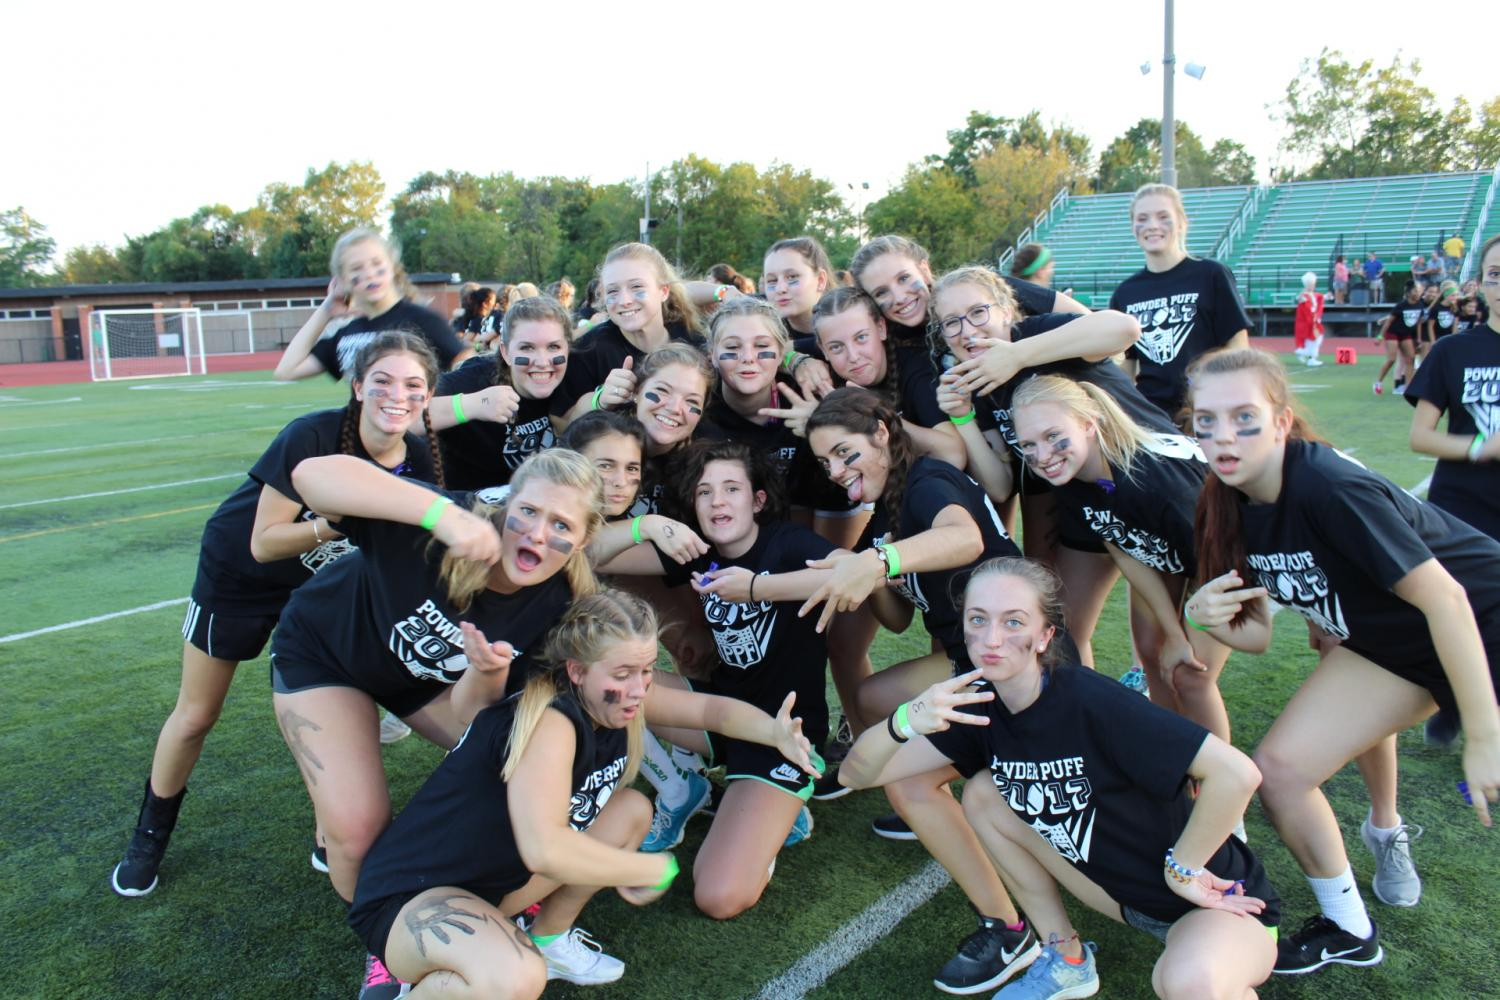 Sign up for Powder Puff